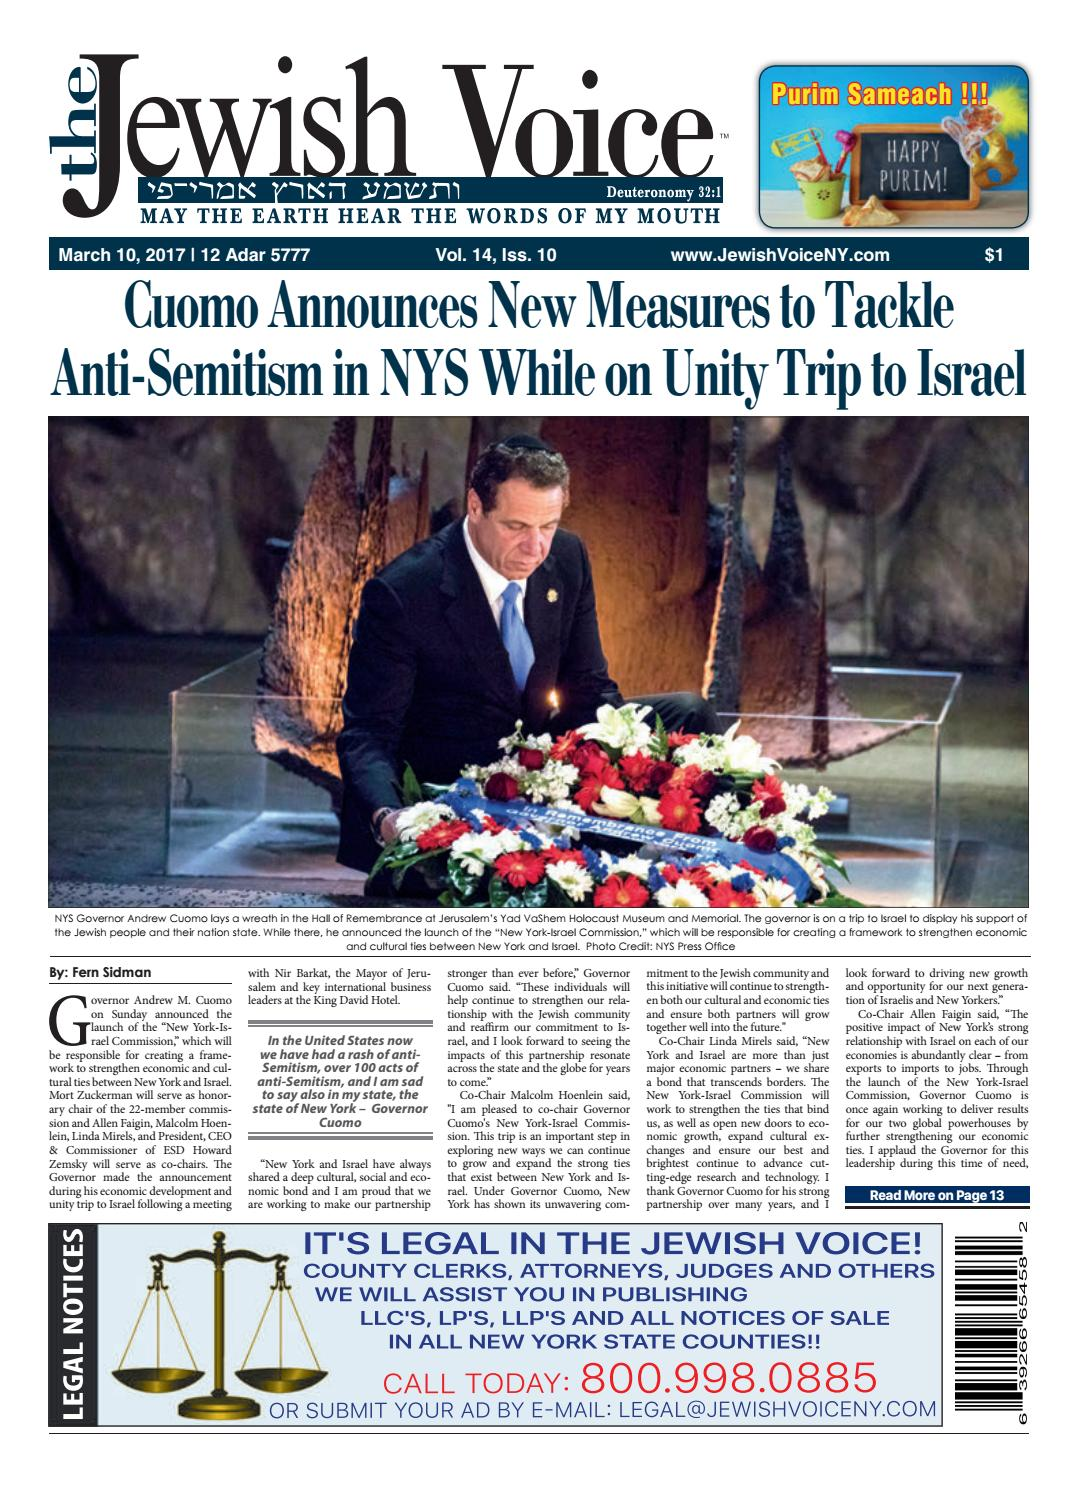 The Jewish Voice | MARCH 10, 2017 by Mike Kurov - issuu